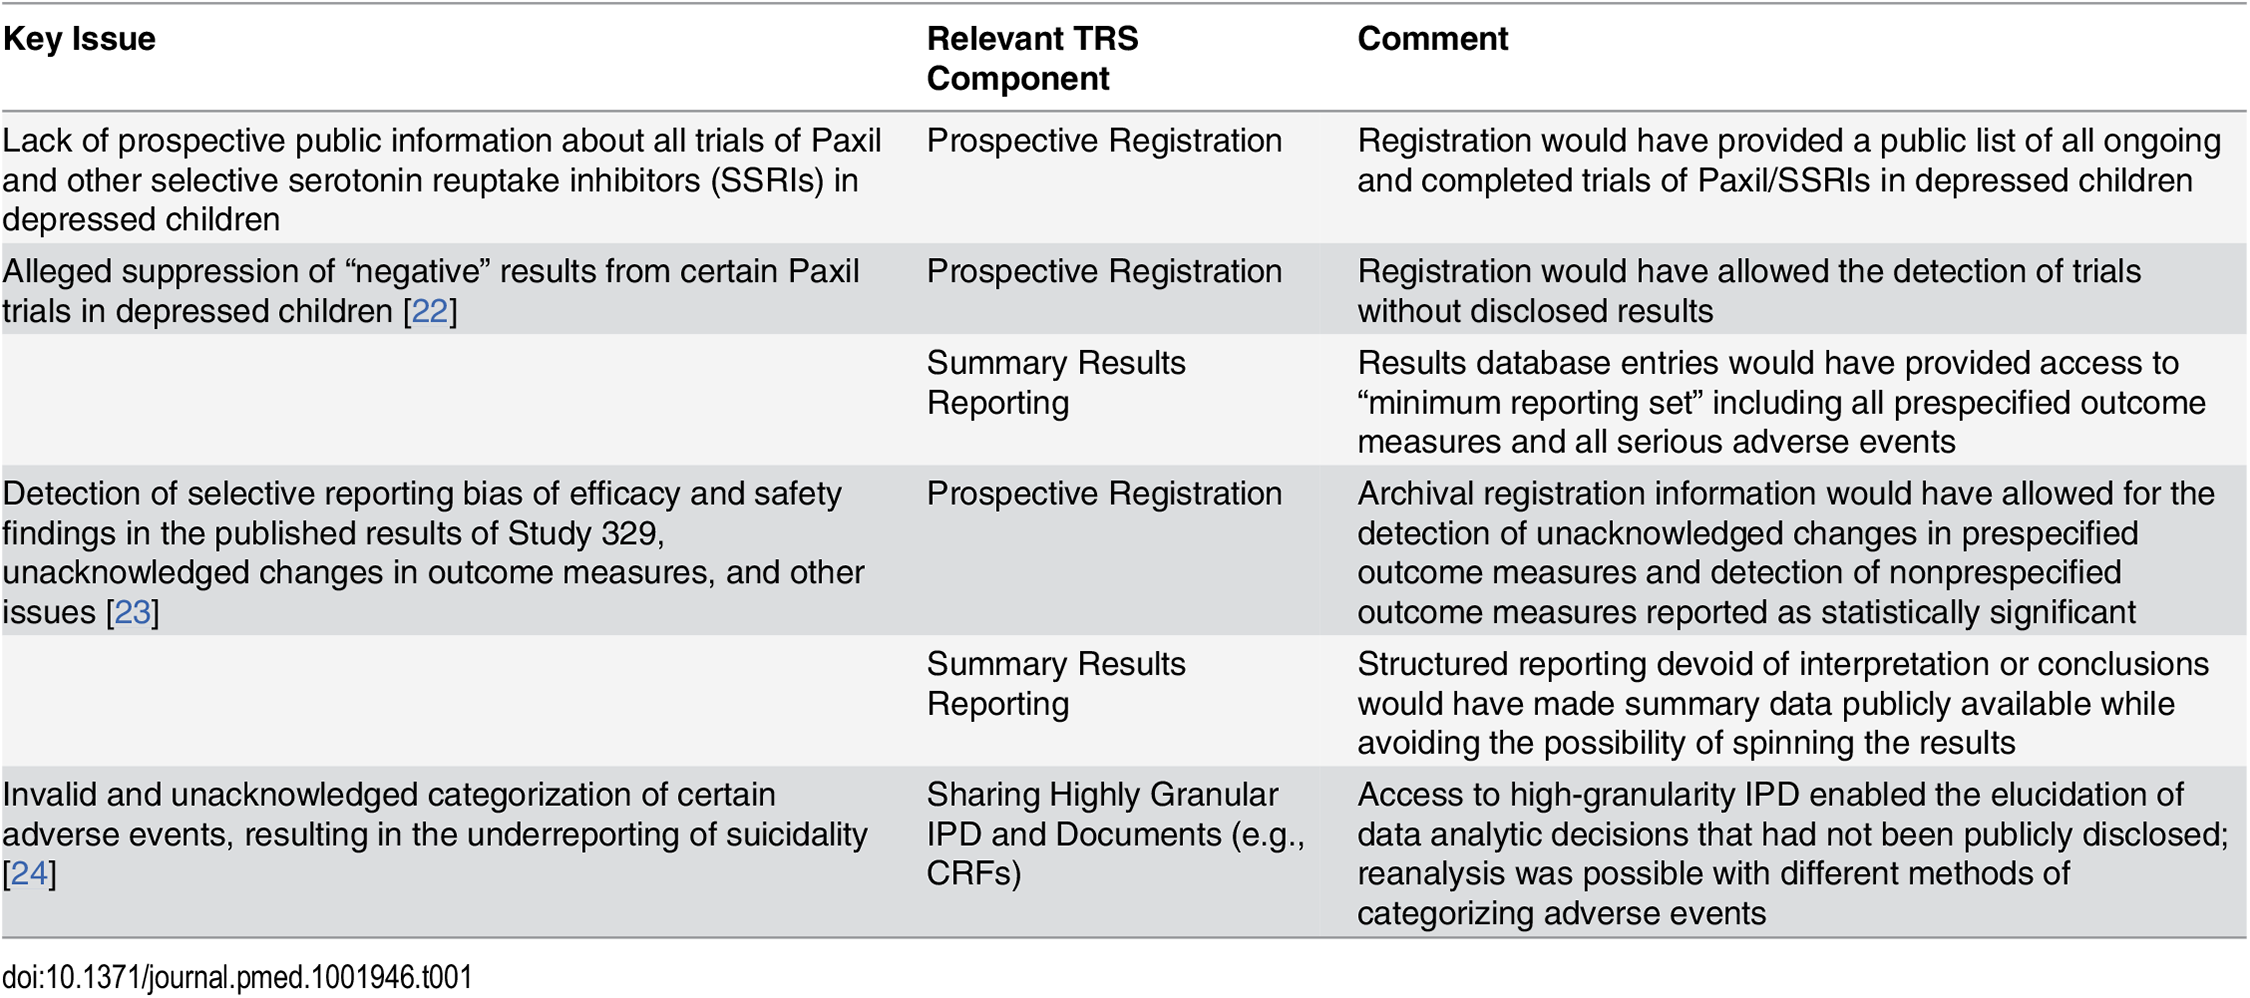 Key issues with trials of antidepressant use in children for depression and the role of the TRS.